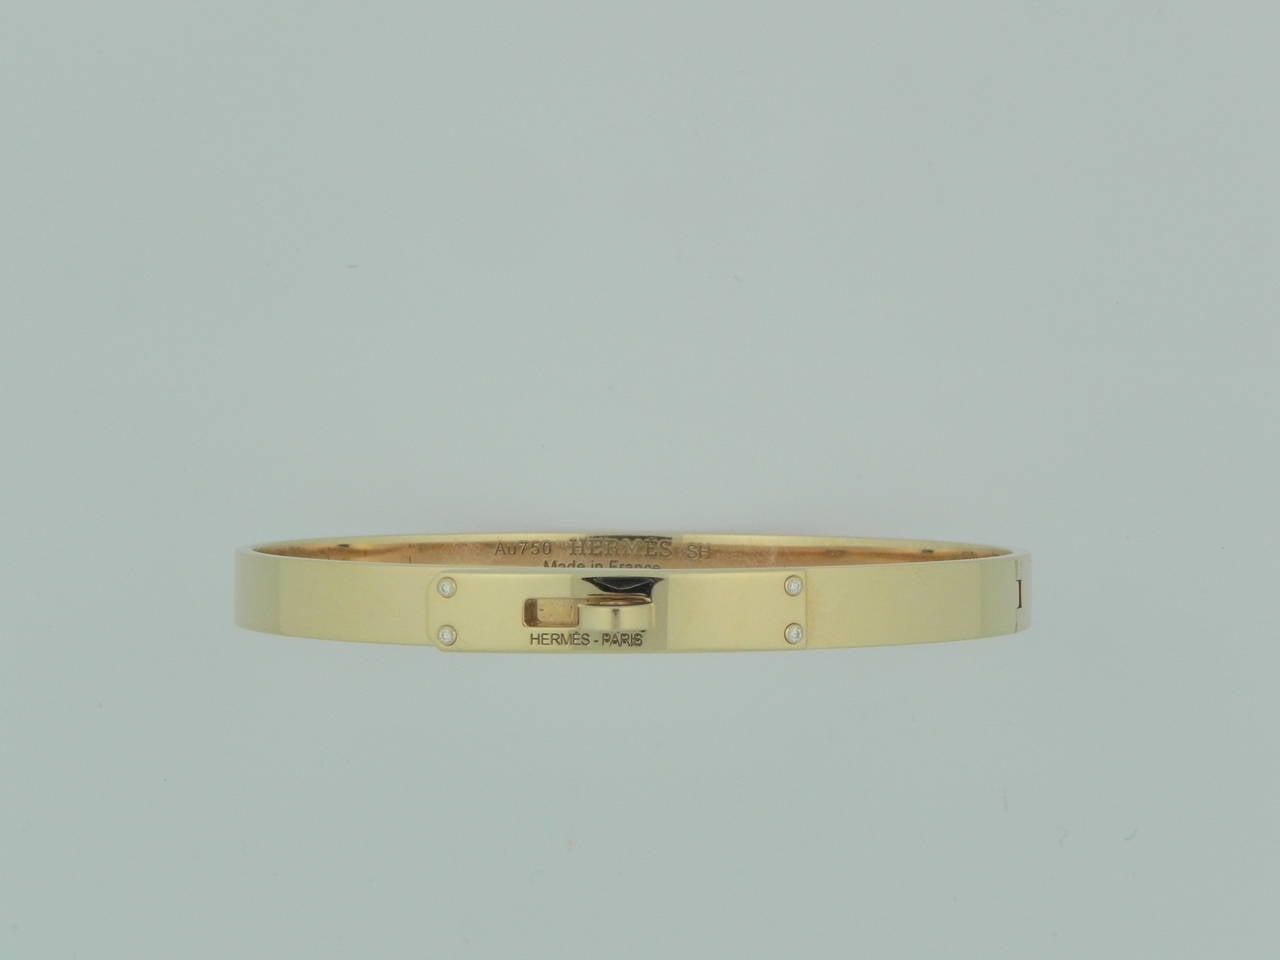 where to buy hermes bags - Hermes Diamond Gold Kelly Bracelet with Box at 1stdibs